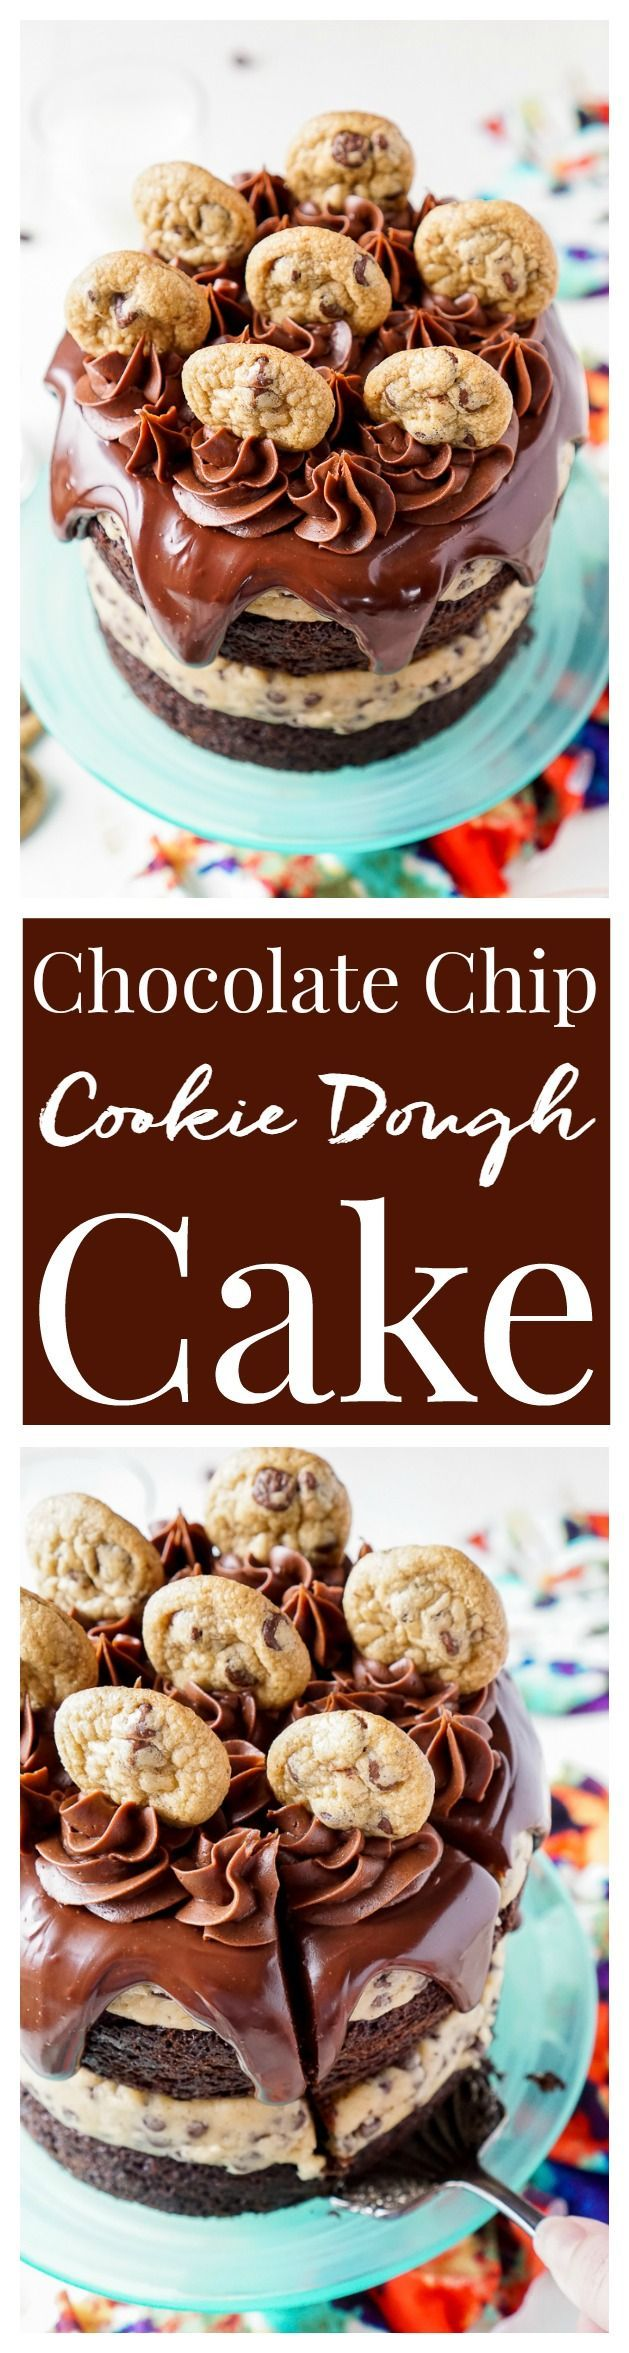 This Chocolate Chip Cookie Dough Cake is made with two layers of delicious…